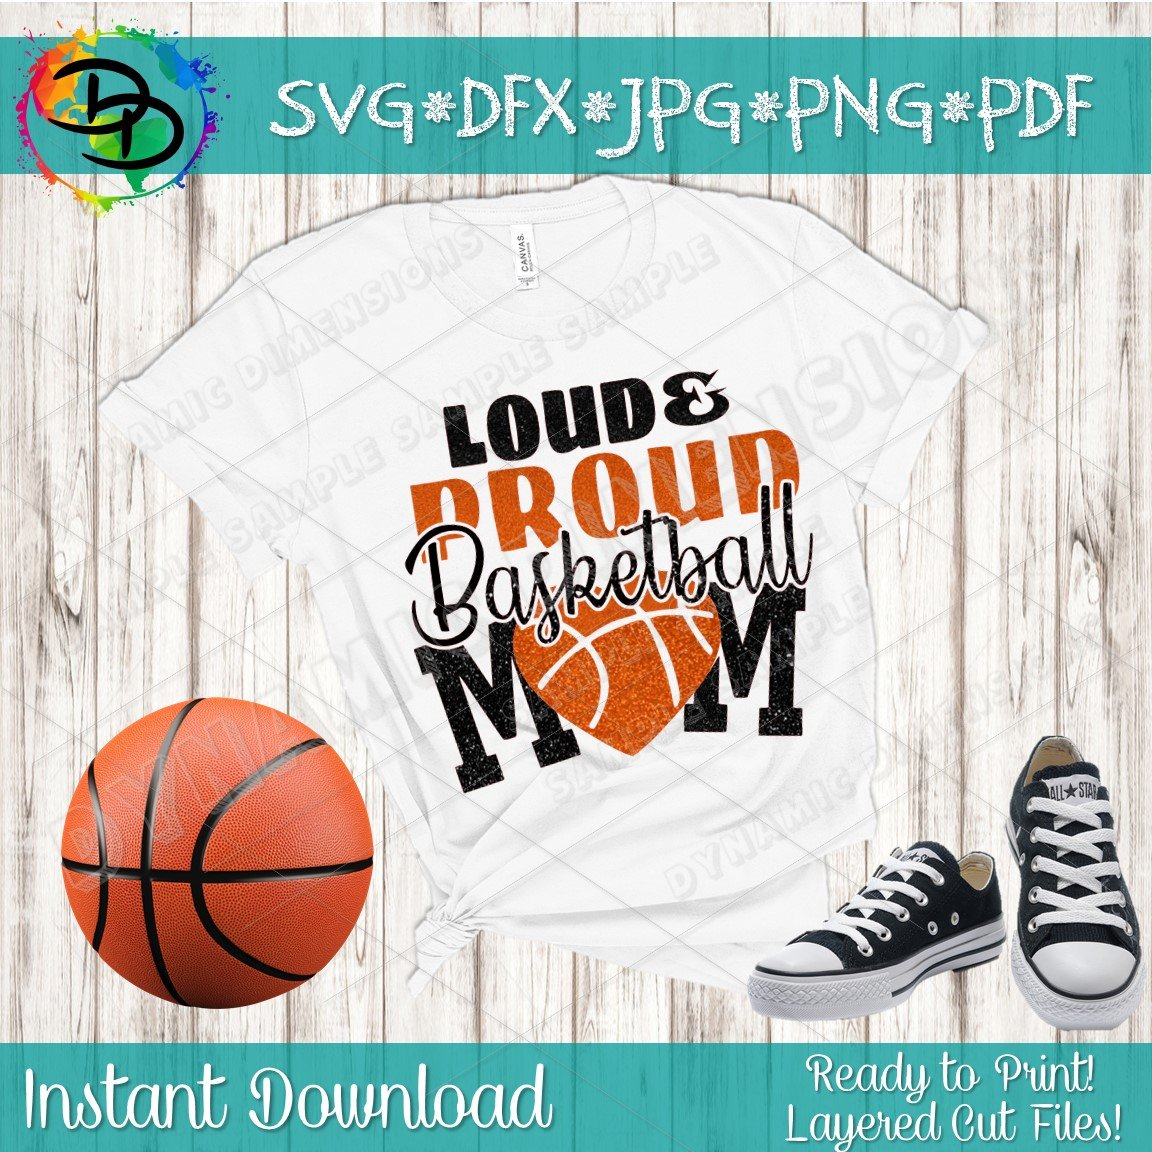 Basketball SVG, DXF, Loud and Proud, Basketball Mom SVG, basketball mom  shirt, Basketball clipart, deign, cut file, silhouette cameo, cricut.